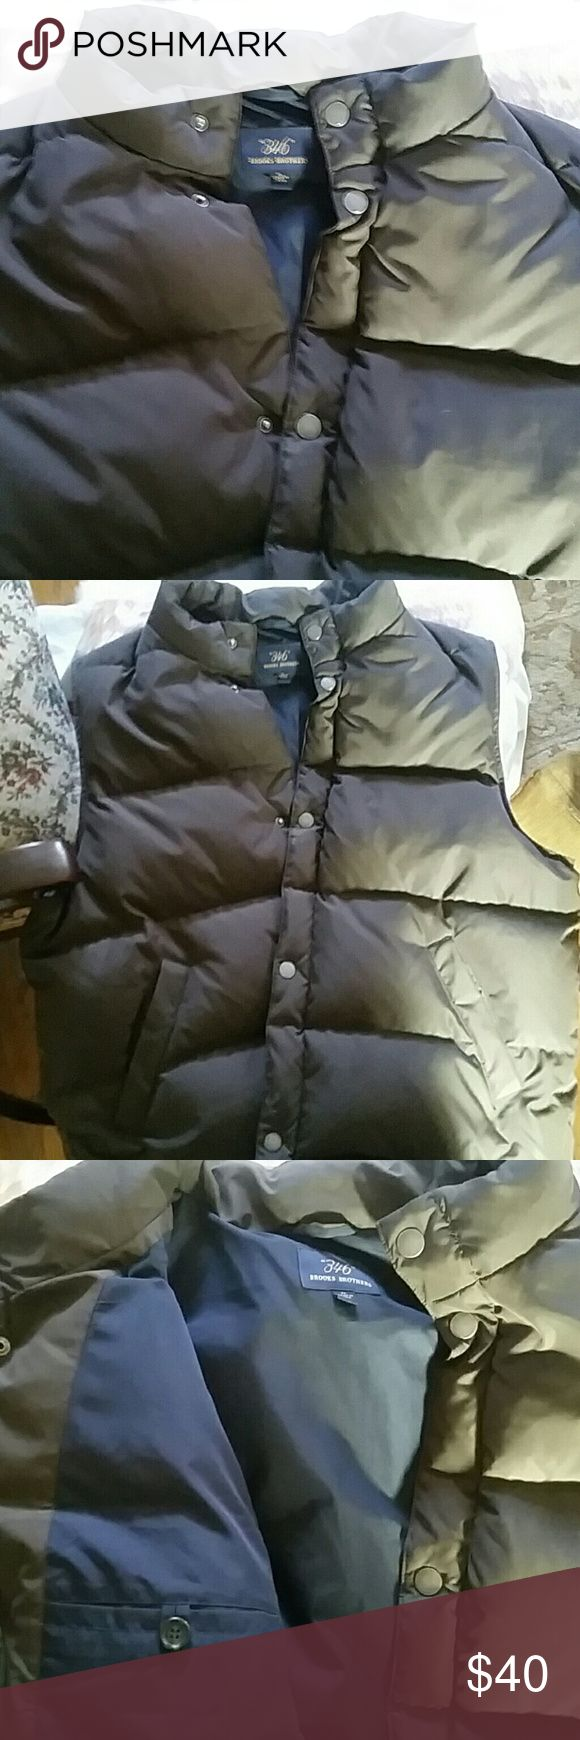 Awesome Brooks Brothers Men's Puffer Vest XL Stylish and warm Brooks Brothers Men's XL Puffer Vest in chocolate color. It doesn't look as if it was ever worn. It zips and buttons down the front. Has side pockets as well. In amazing preowned condition. Brooks Brothers Jackets & Coats Vests